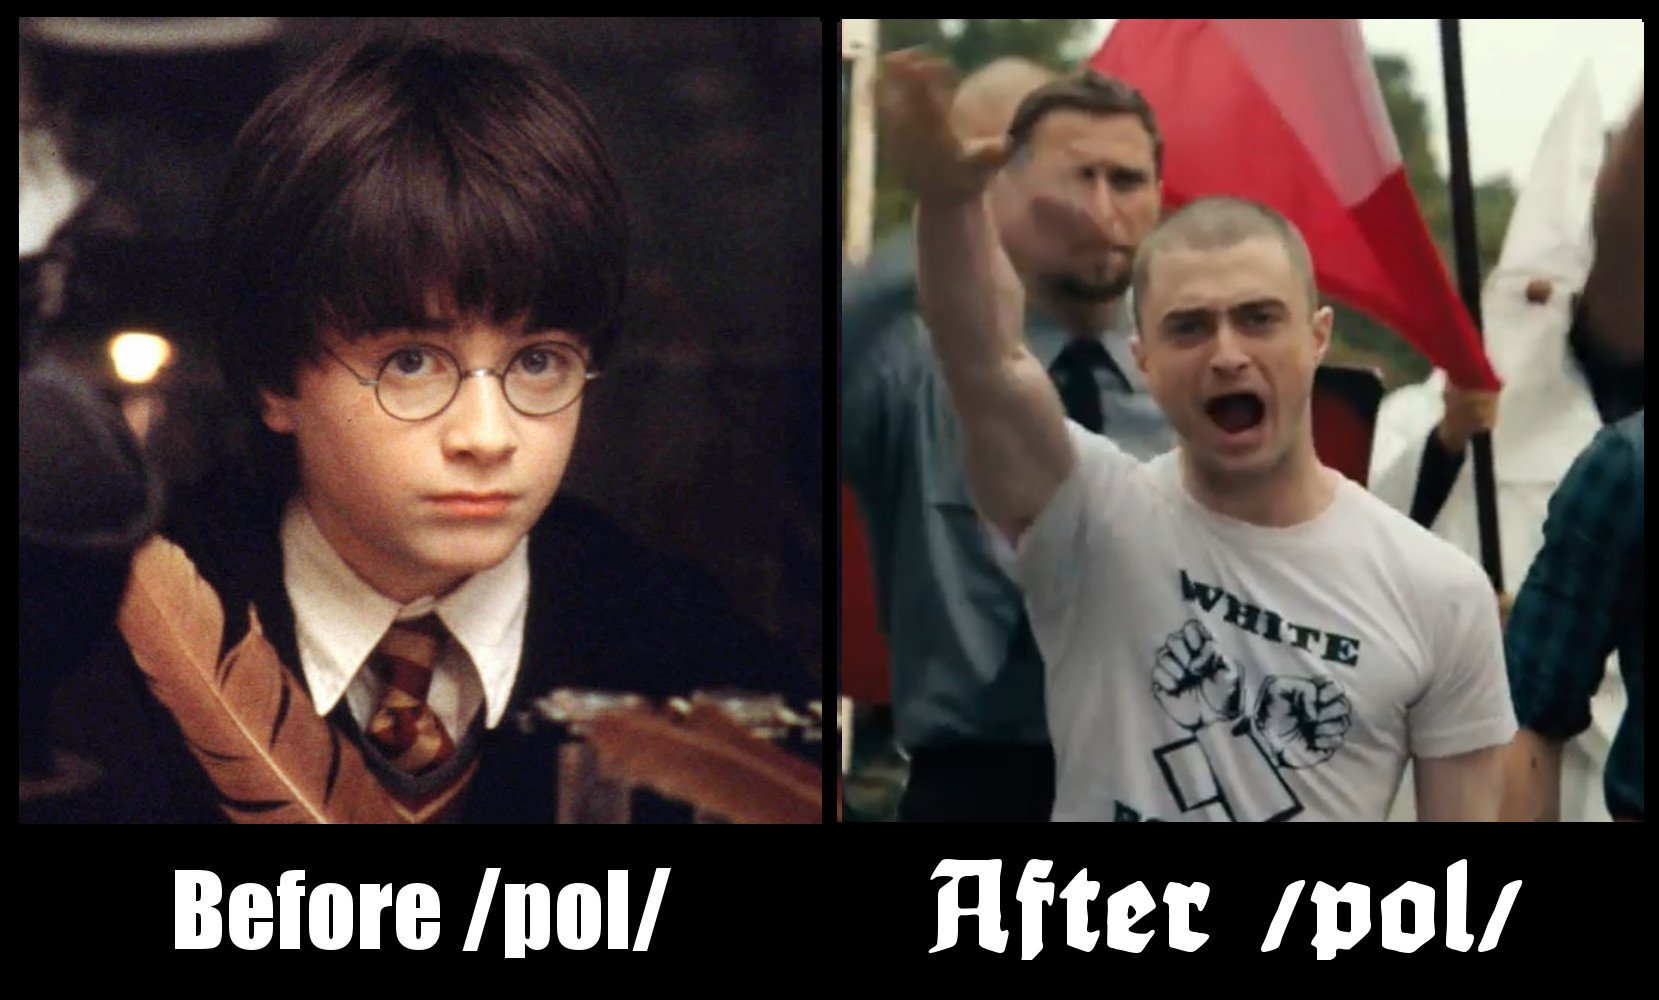 d57 daniel radcliffe before and after pol pol know your meme